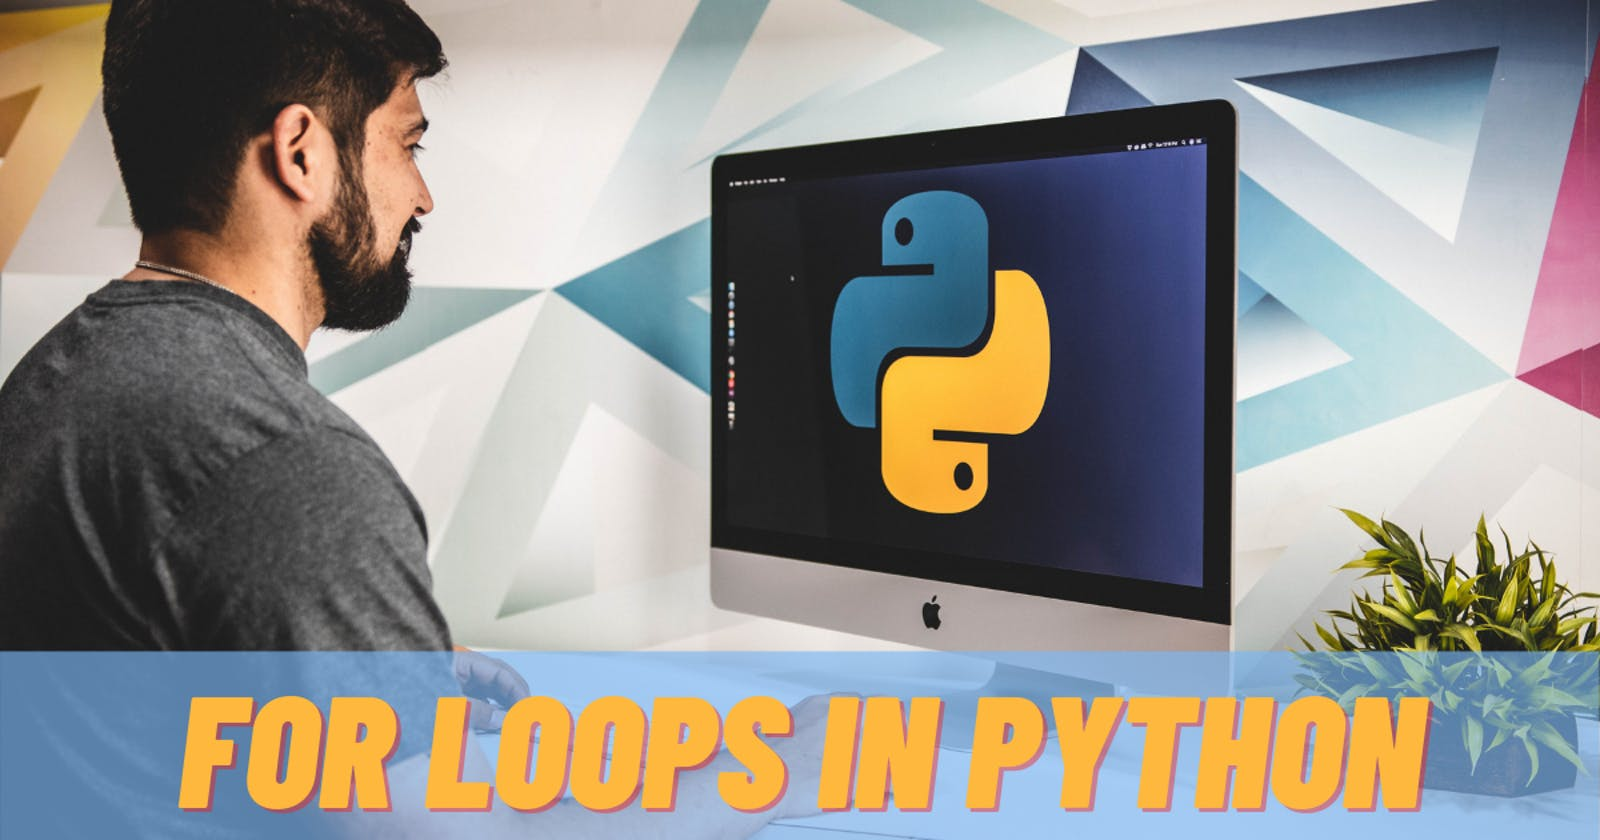 For Loop in Python